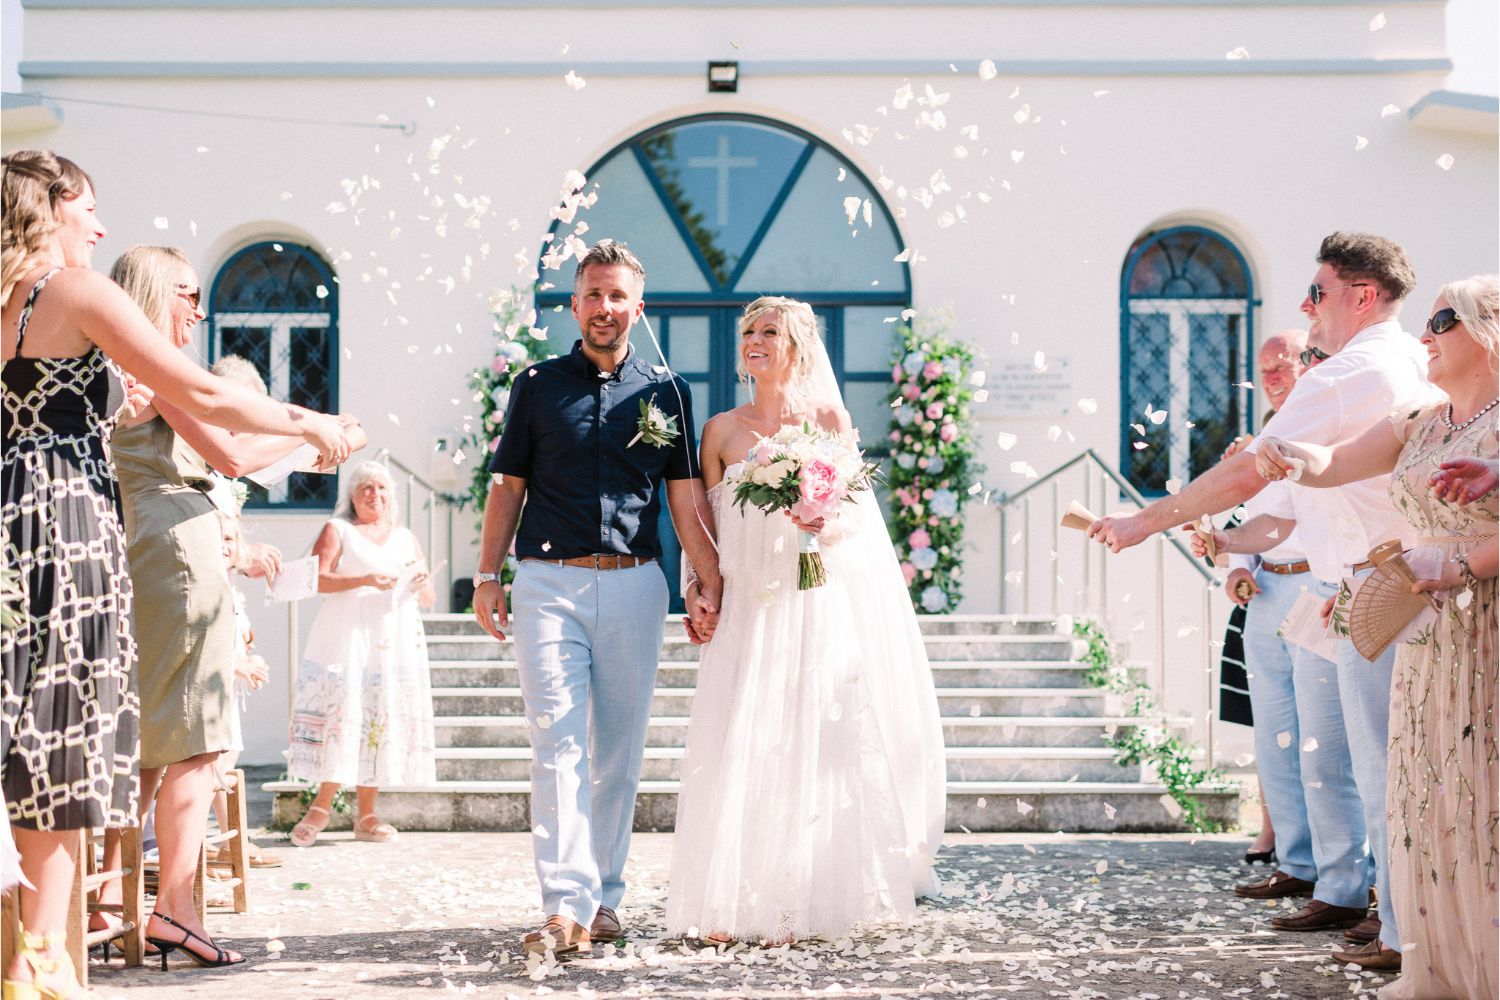 wedding recessional in rustic Cretan village